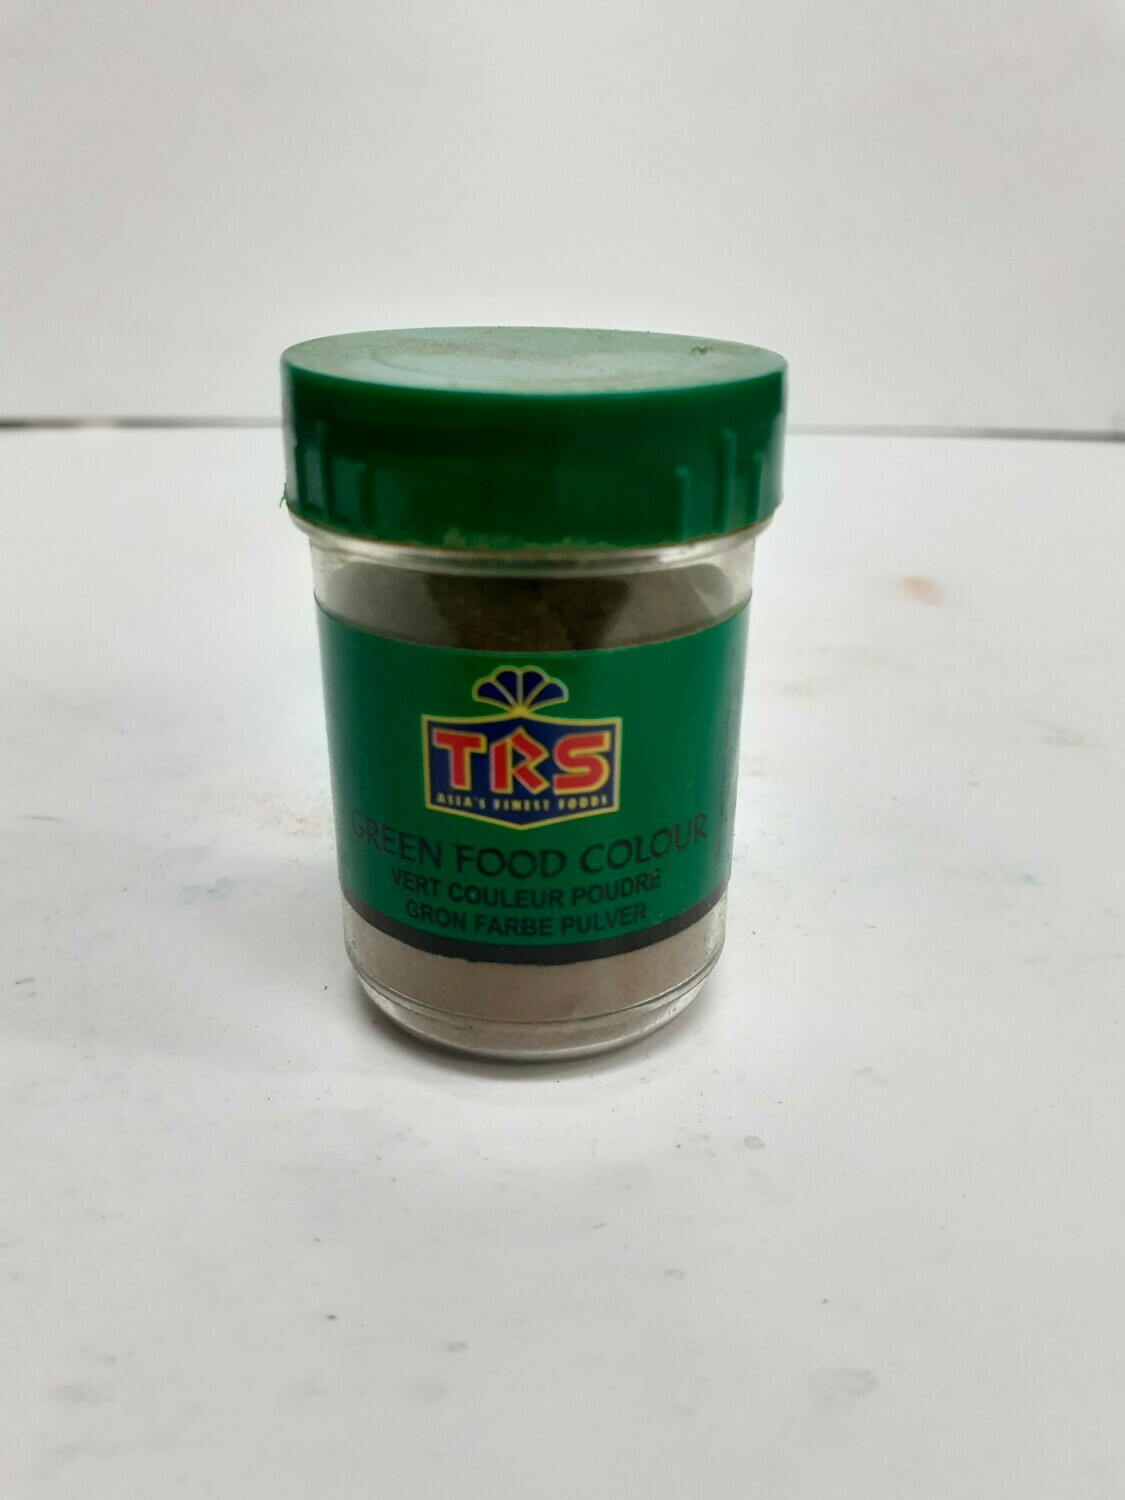 Green Food Colour TRS 25 g